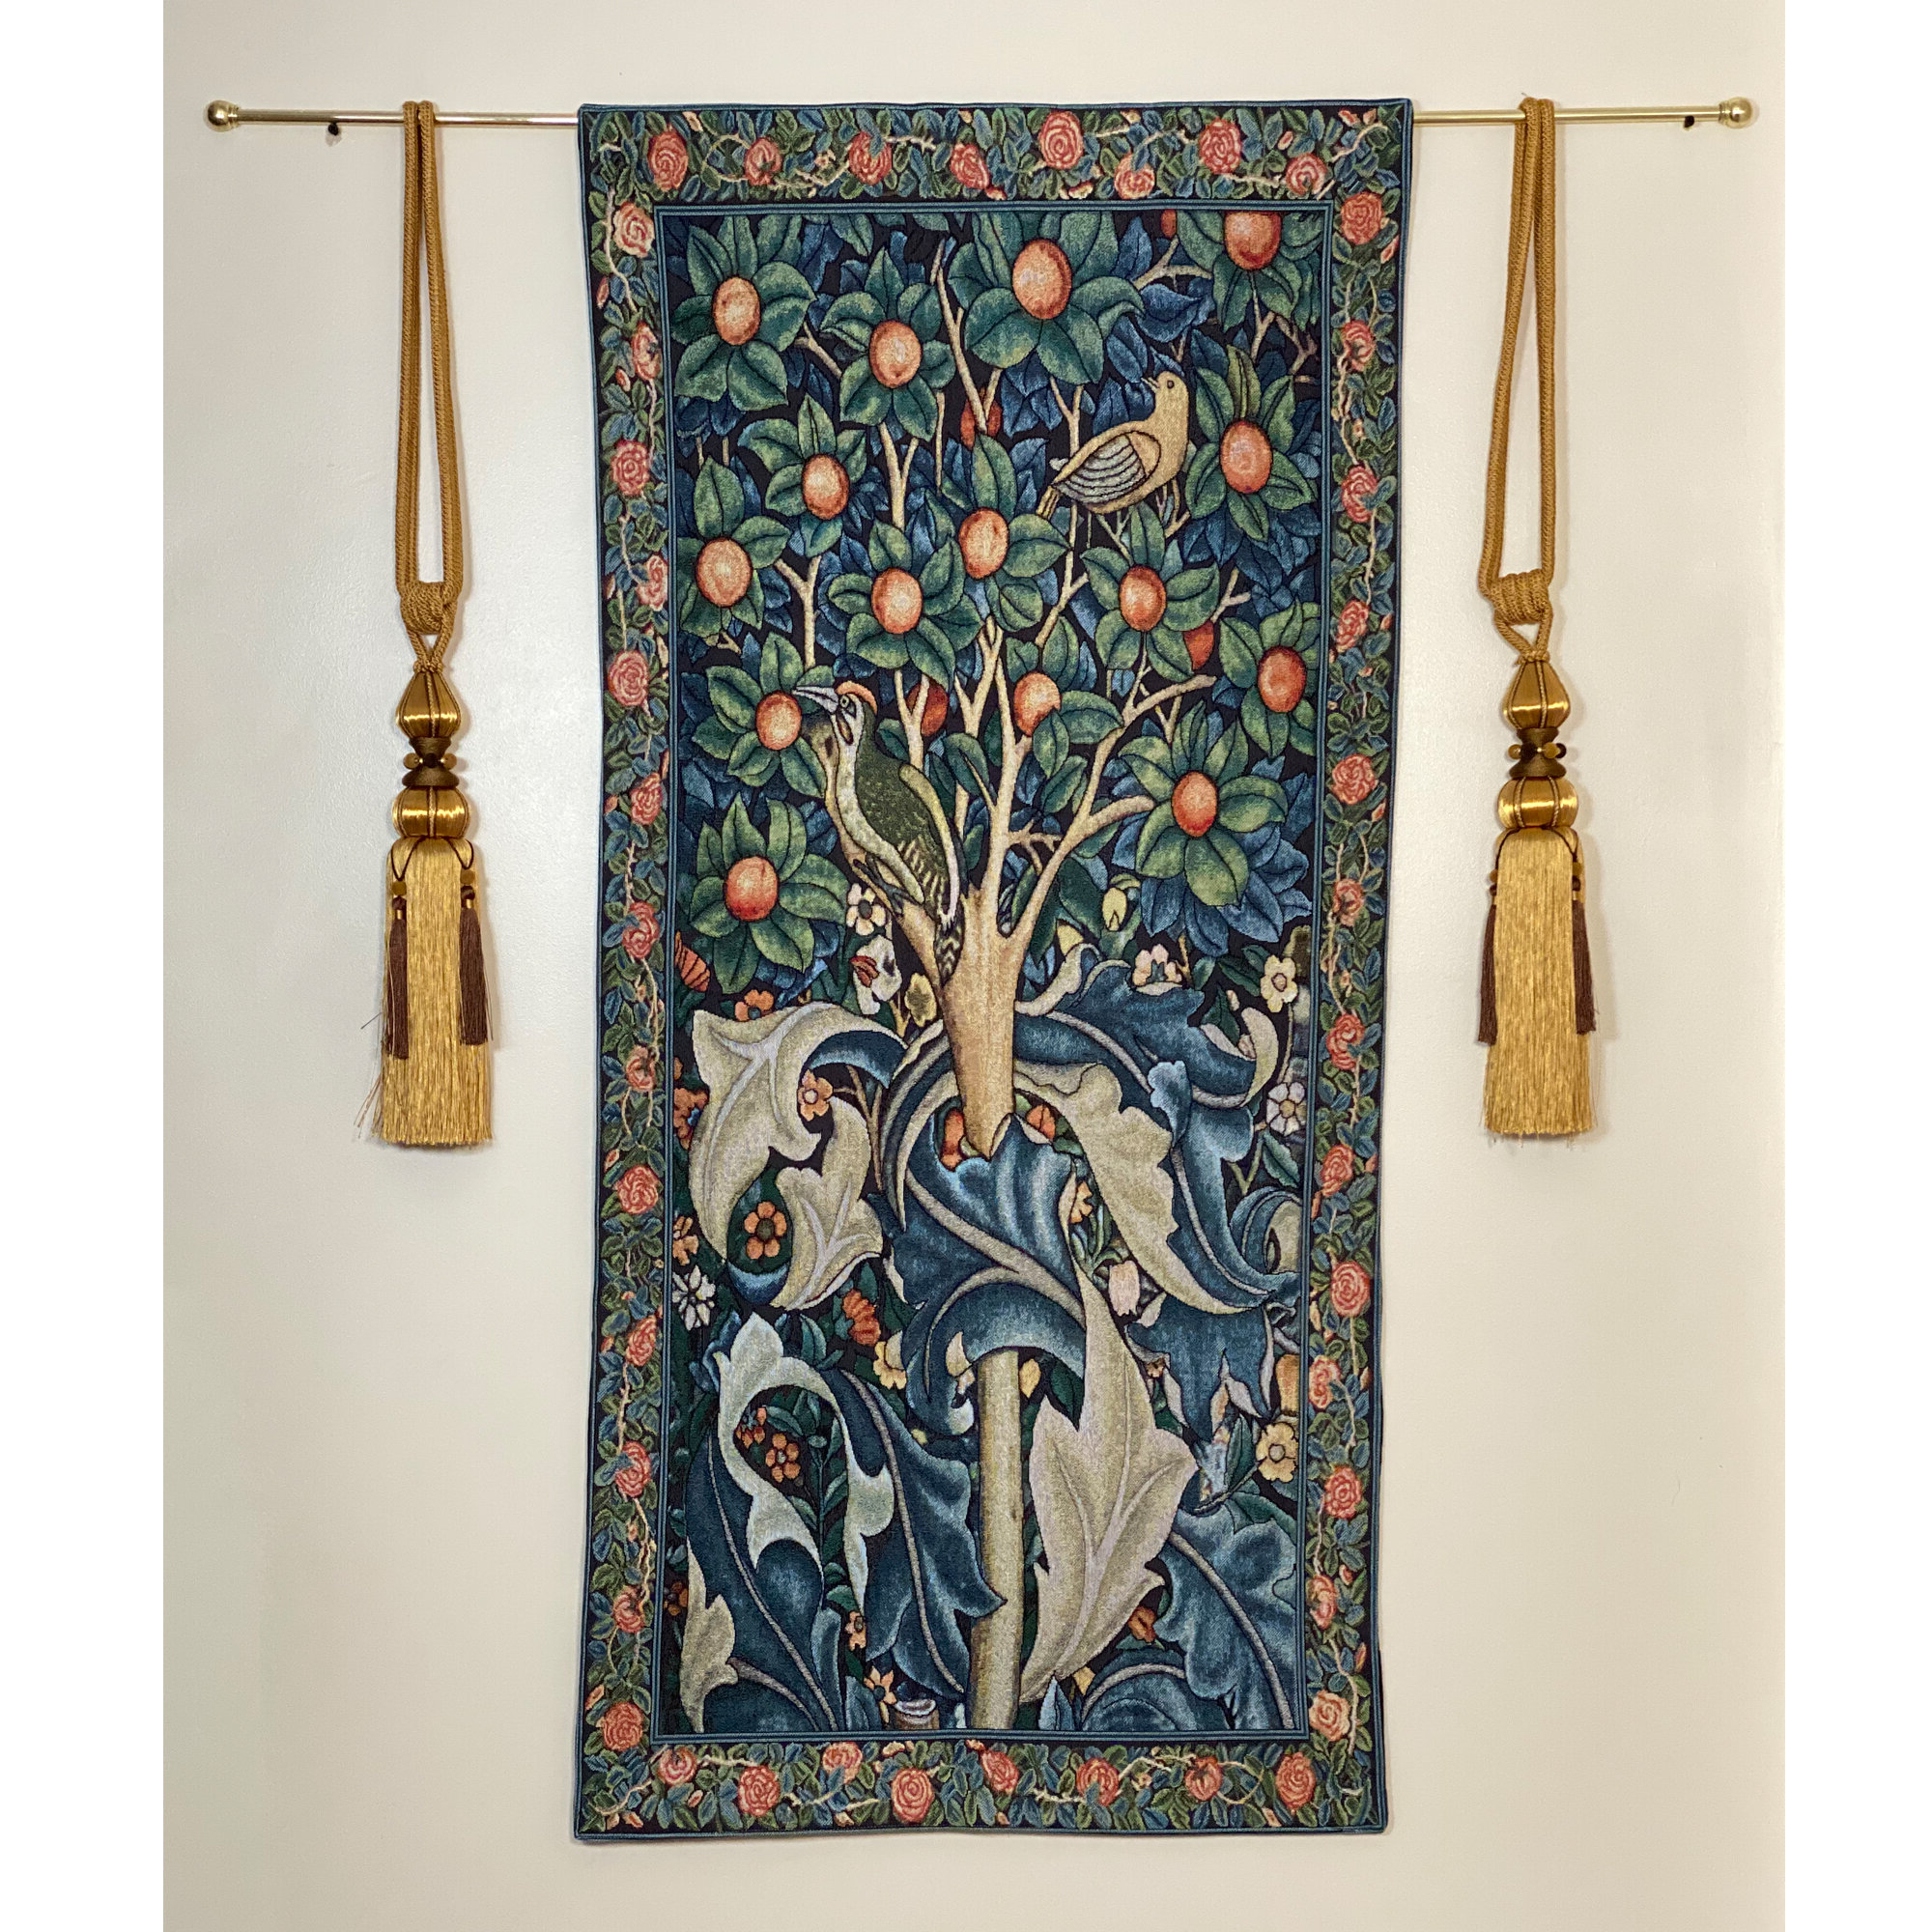 Trendy Blended Fabric Hidden Garden Chinoiserie Wall Hangings With Rod Intended For Cotton William Morris Woodpecker In Fruit Tree Wall Hanging (View 7 of 20)